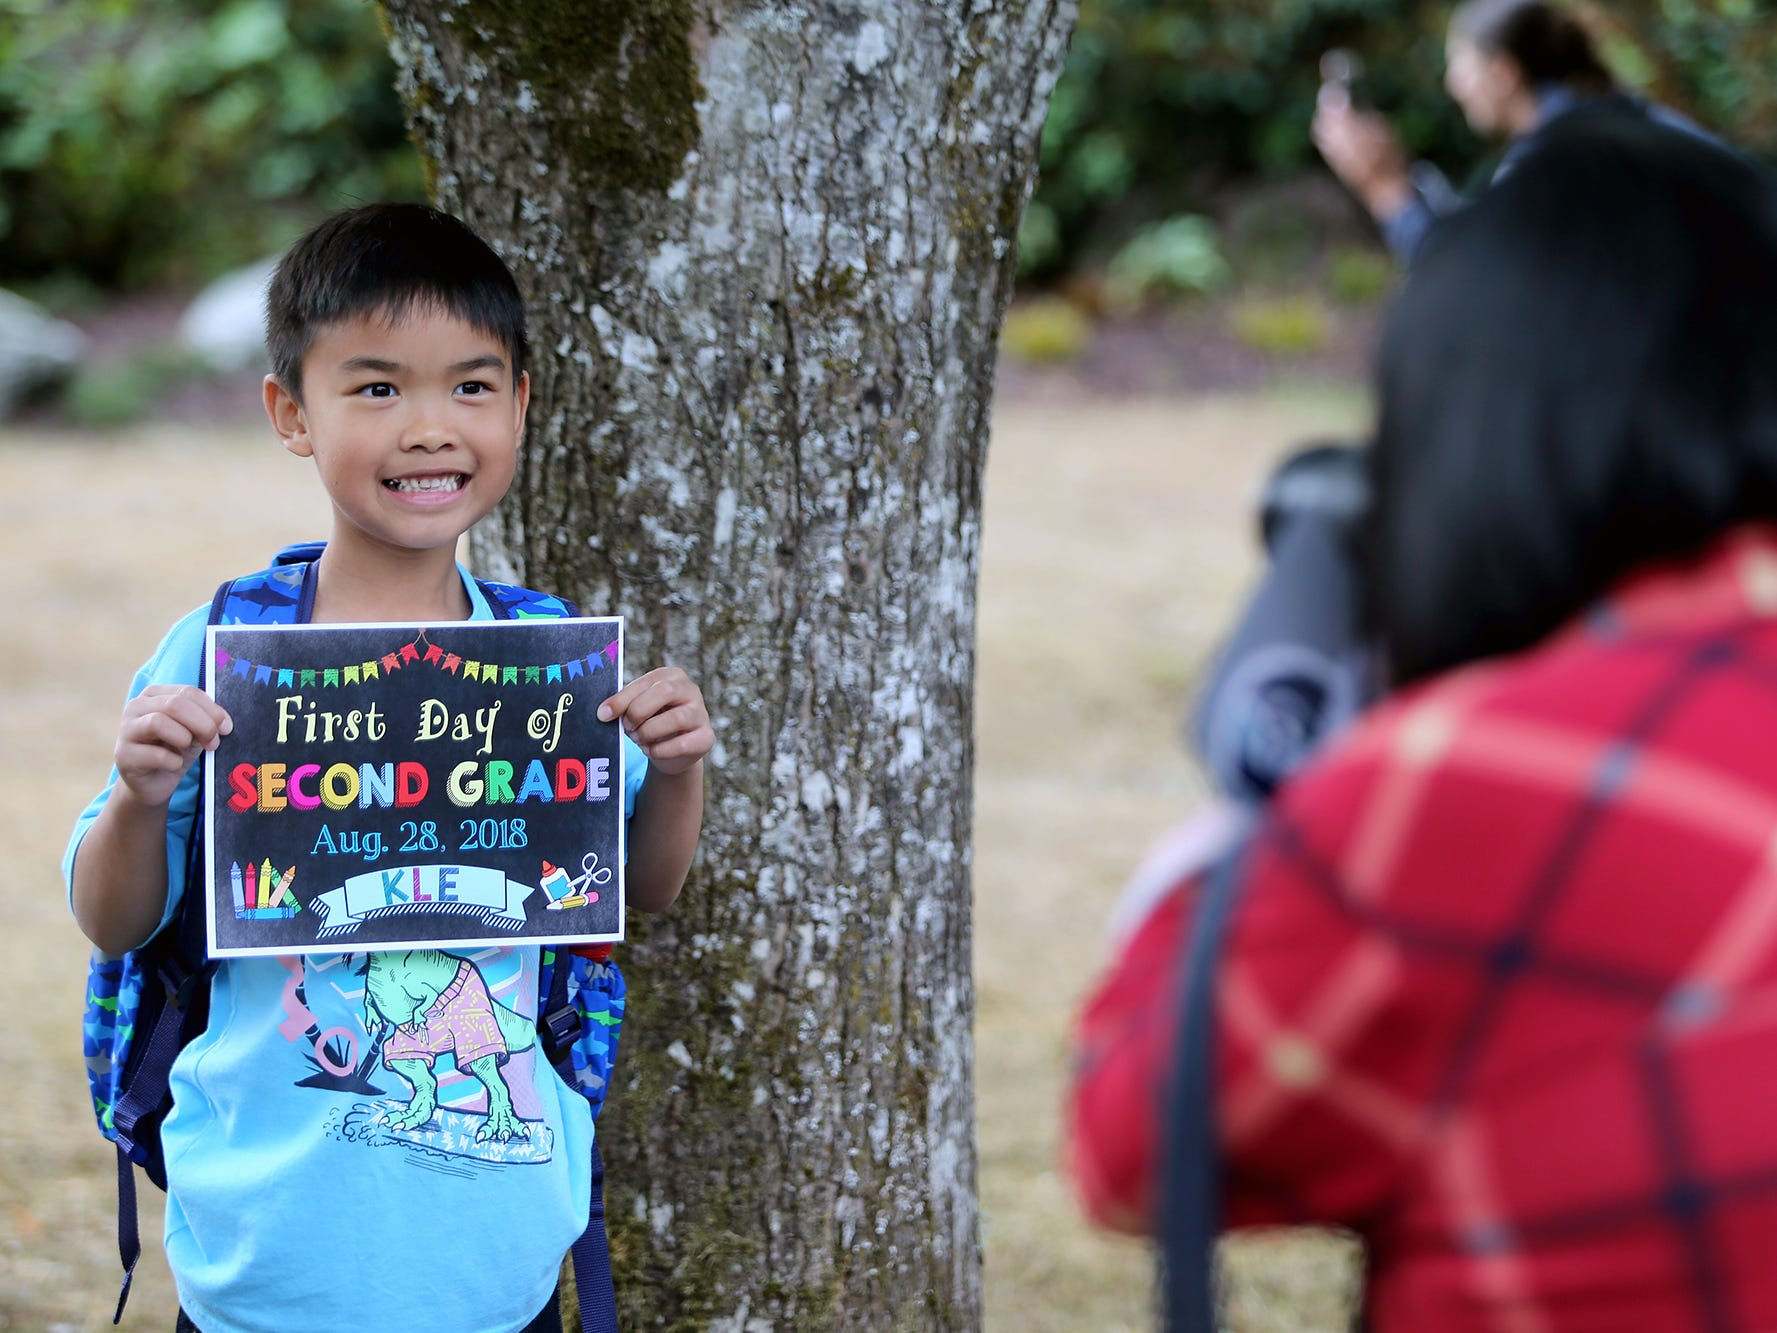 Jayden Aguilar, 7, gets his photo taken by his mom Daisy on the first day of school at Kitsap Lake Elementary School on Wednesday, August 29, 2018.